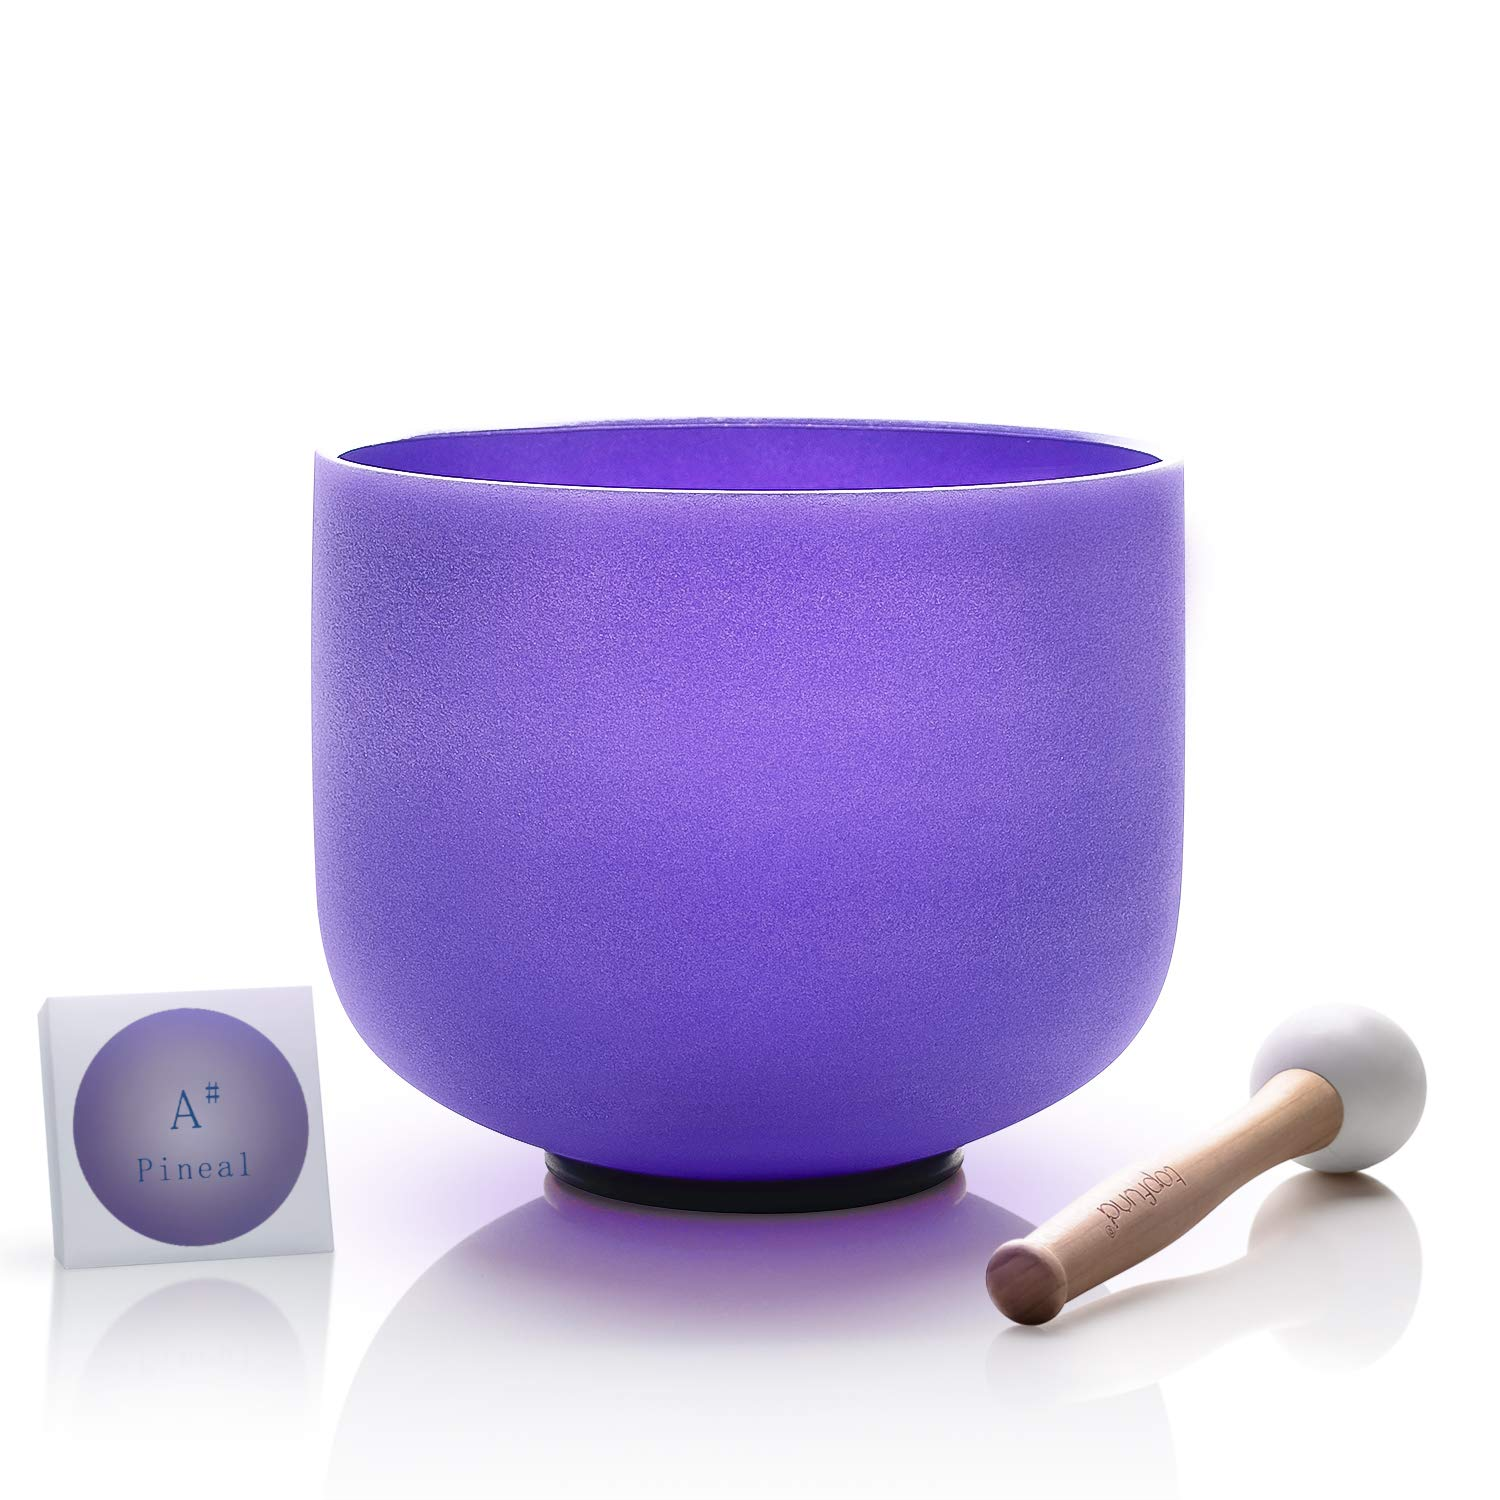 TOPFUND Crystal Singing Bowl Violet Color A# Note Pineal Chakra 8 inch,O-Ring and Rubber Mallet Included by TOPFUND